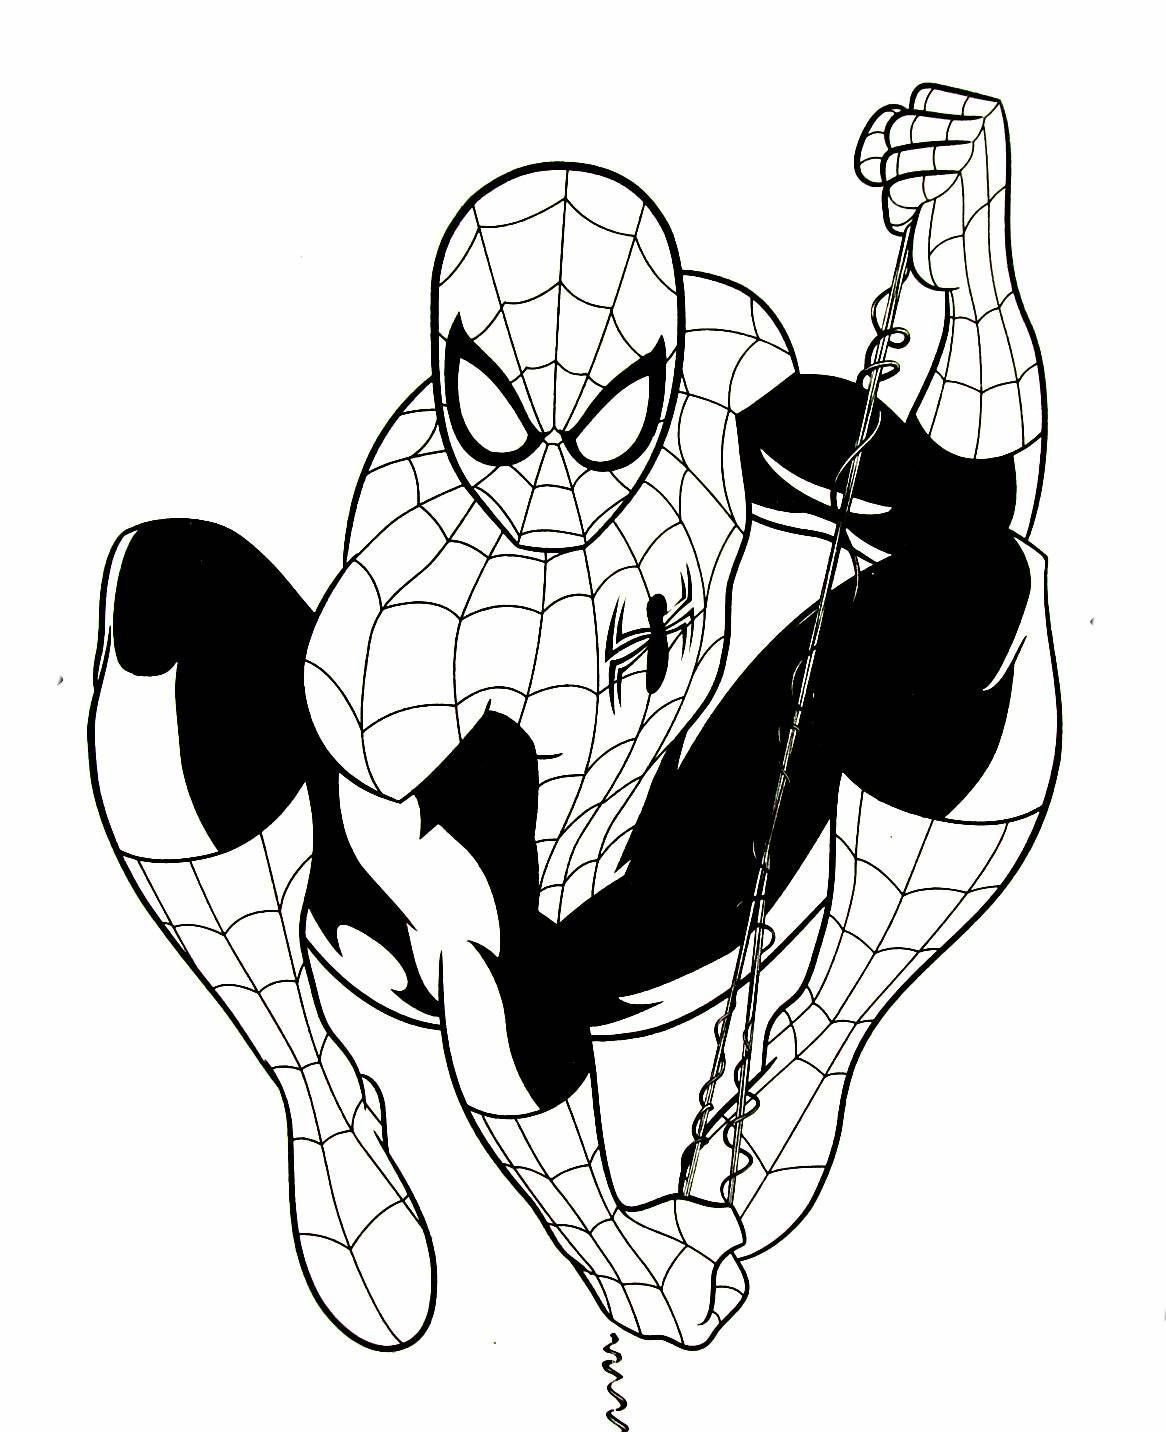 950 Coloring Book Spiderman Free In 2020 Spiderman Coloring Coloring Books